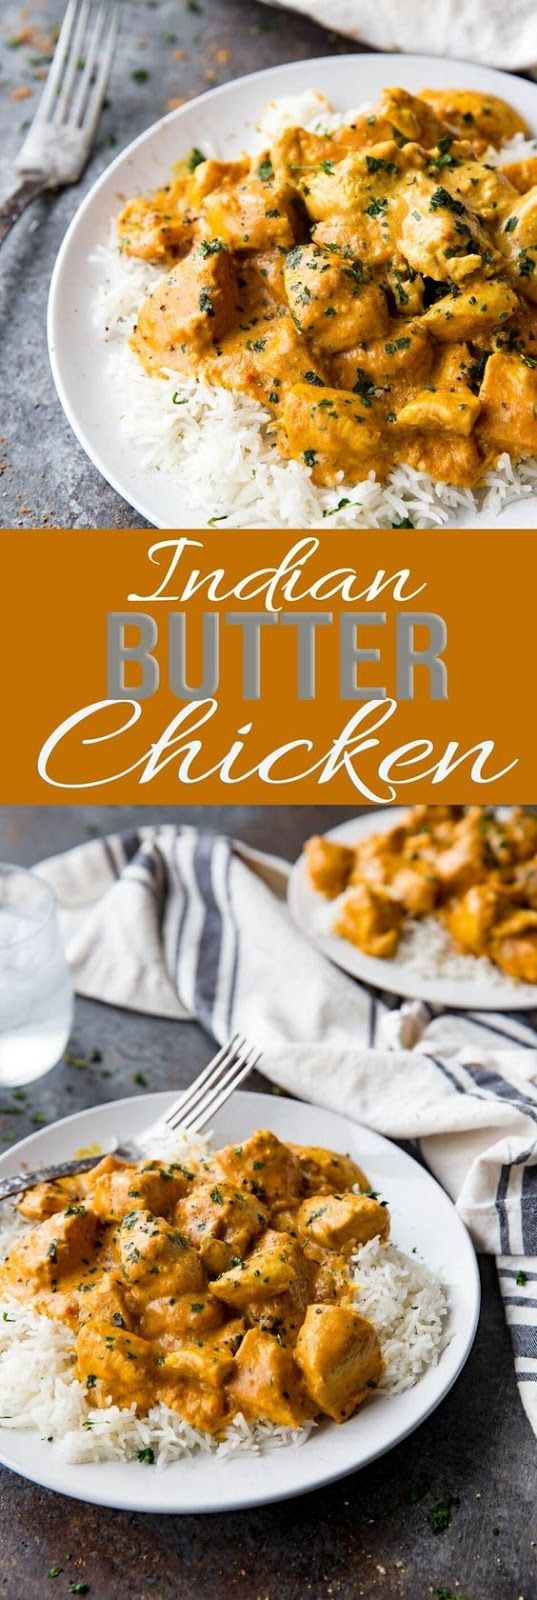 INDIAN BUTTER CHICKEN RECIPE | Food And Cake Recipes